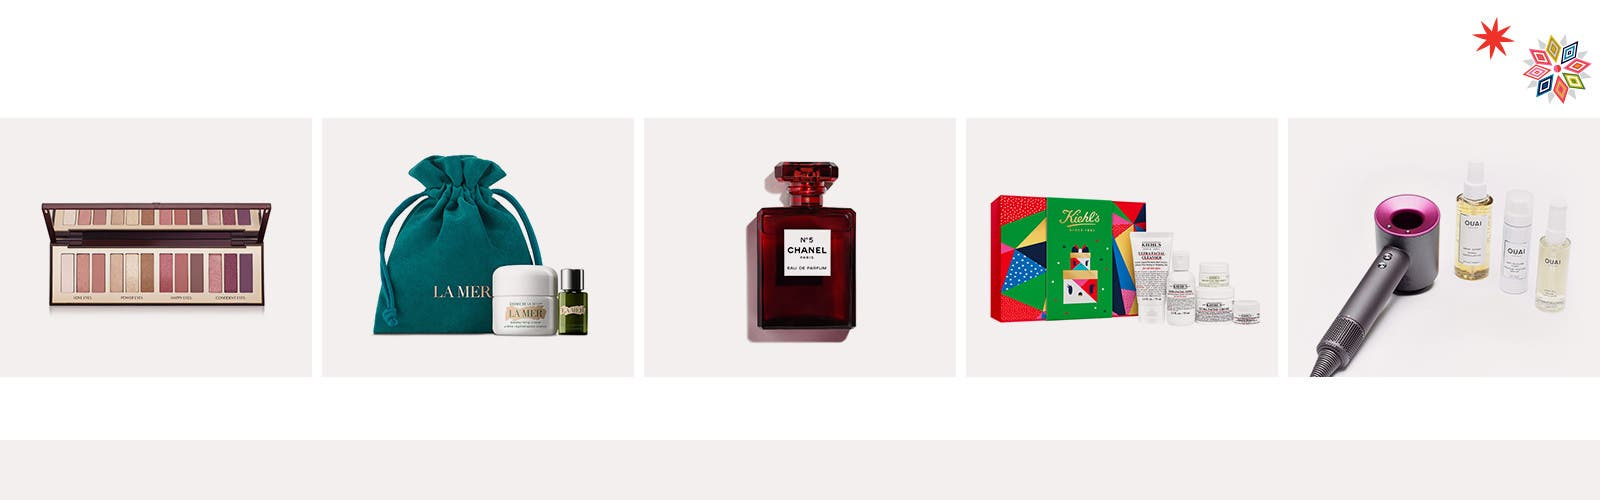 Feel-good beauty and fragrance gifts and values.